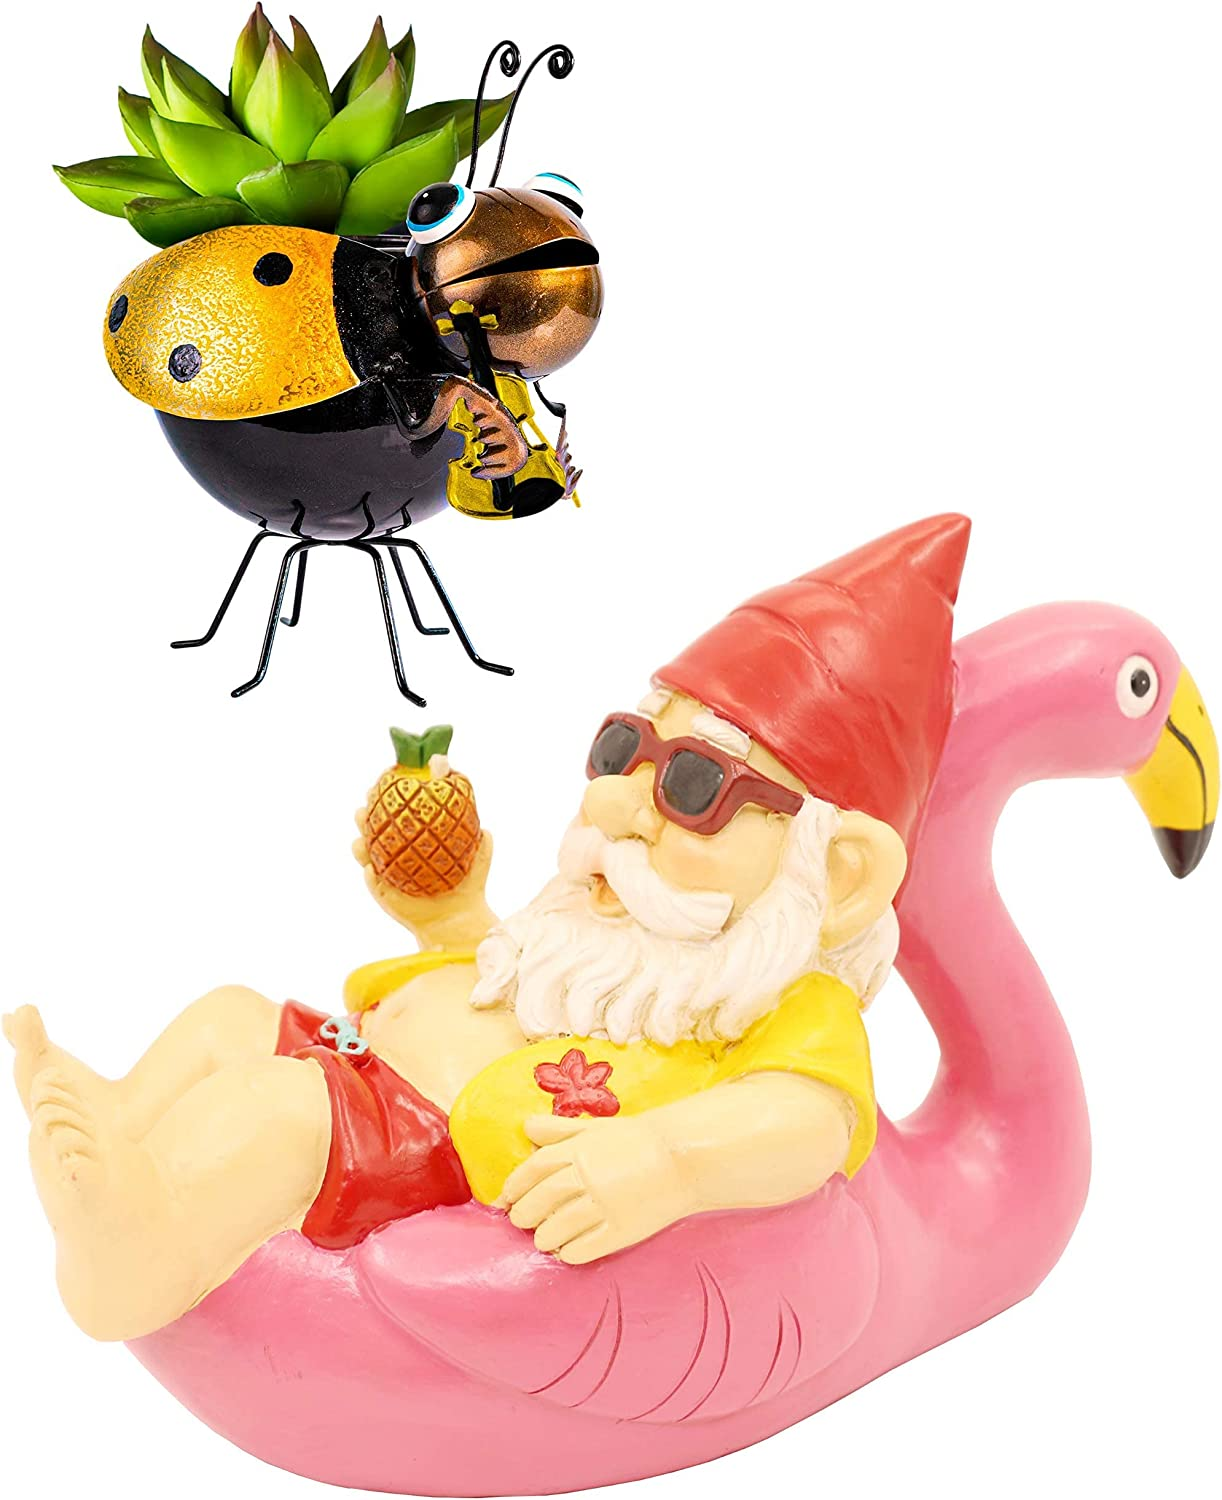 Garden Gnome on Flamingo + Ladybug Indoor/Outdoor Succulent Planter. The Perfect Bundle for Nature Lovers